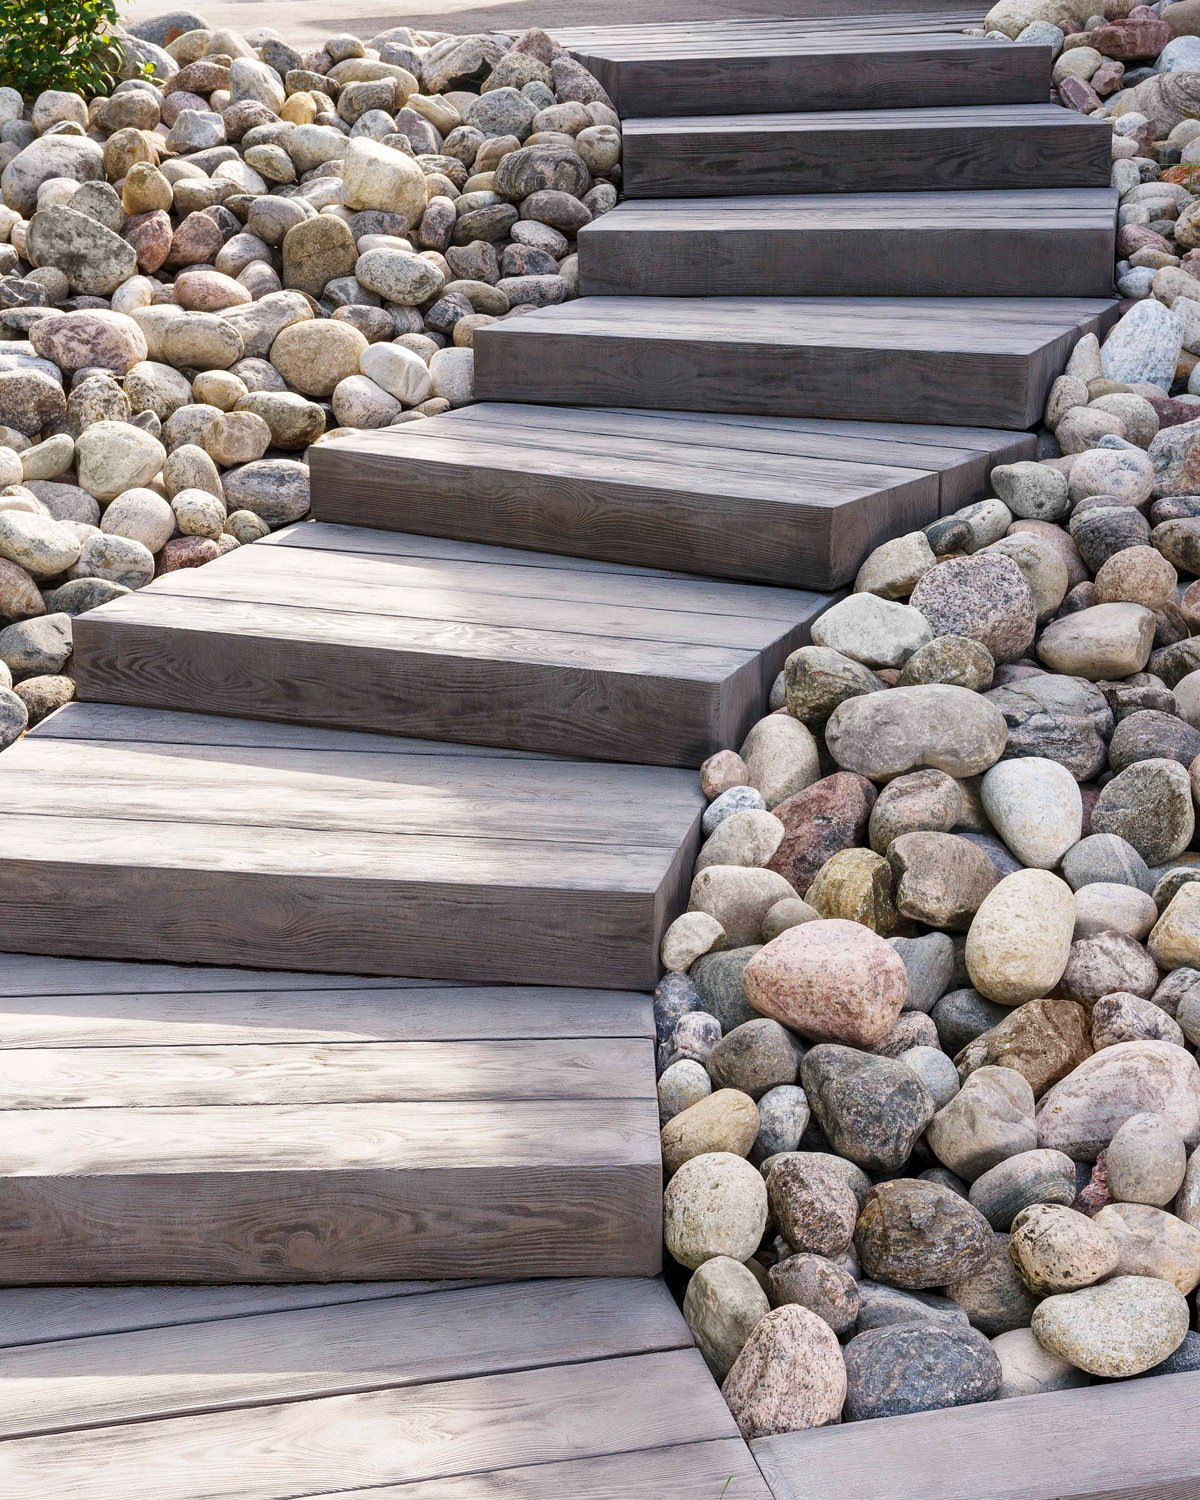 Our wood look-alike Borealis stone steps